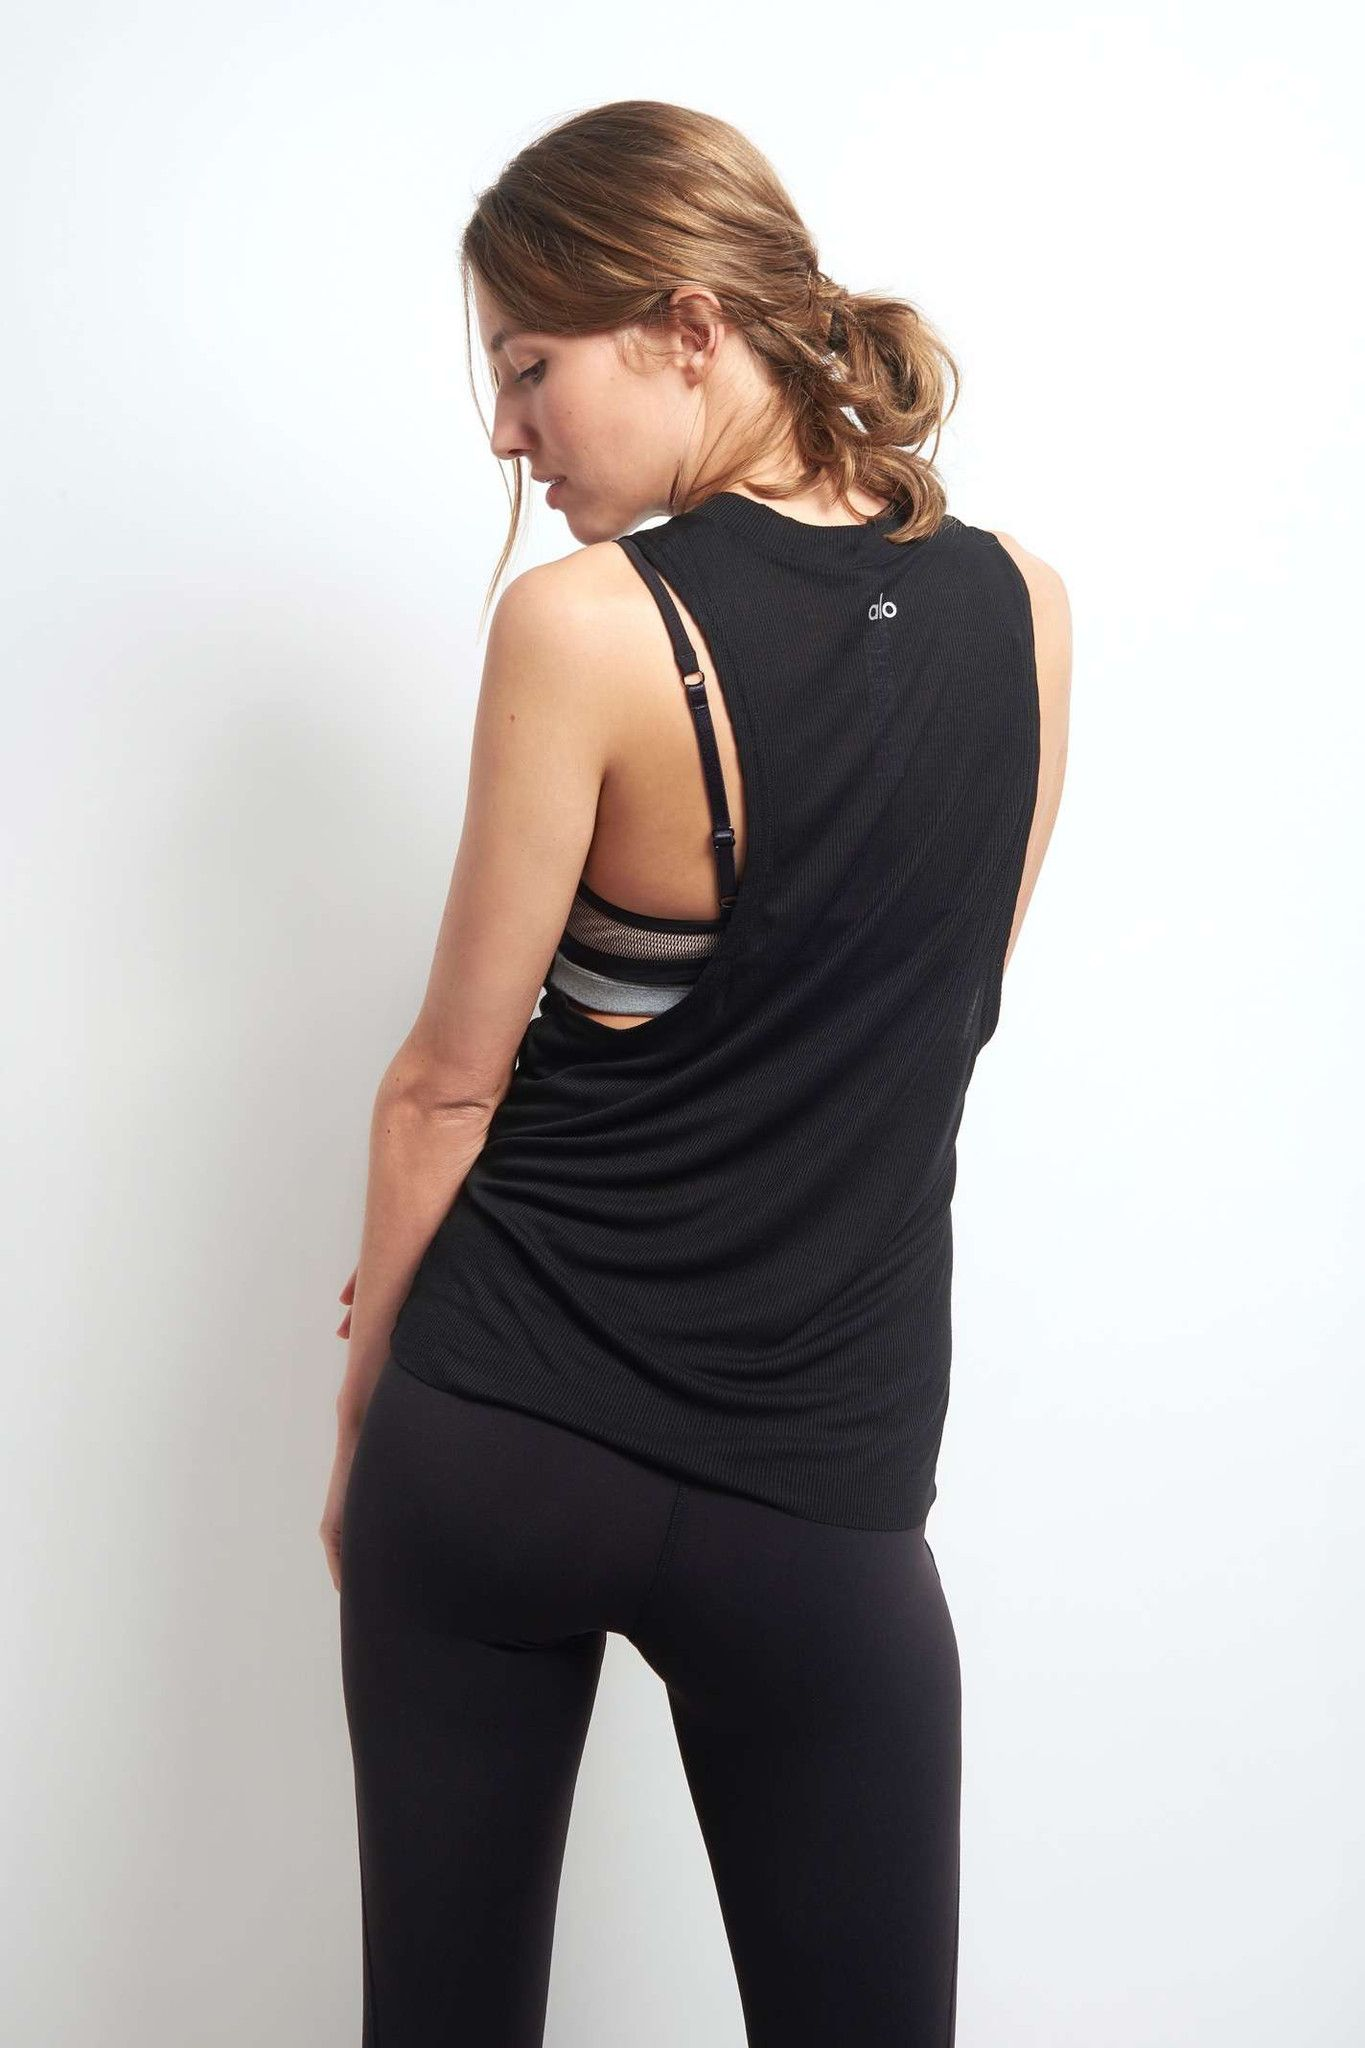 Alo Yoga Heat Wave Tank - Black image 3 - The Sports Edit